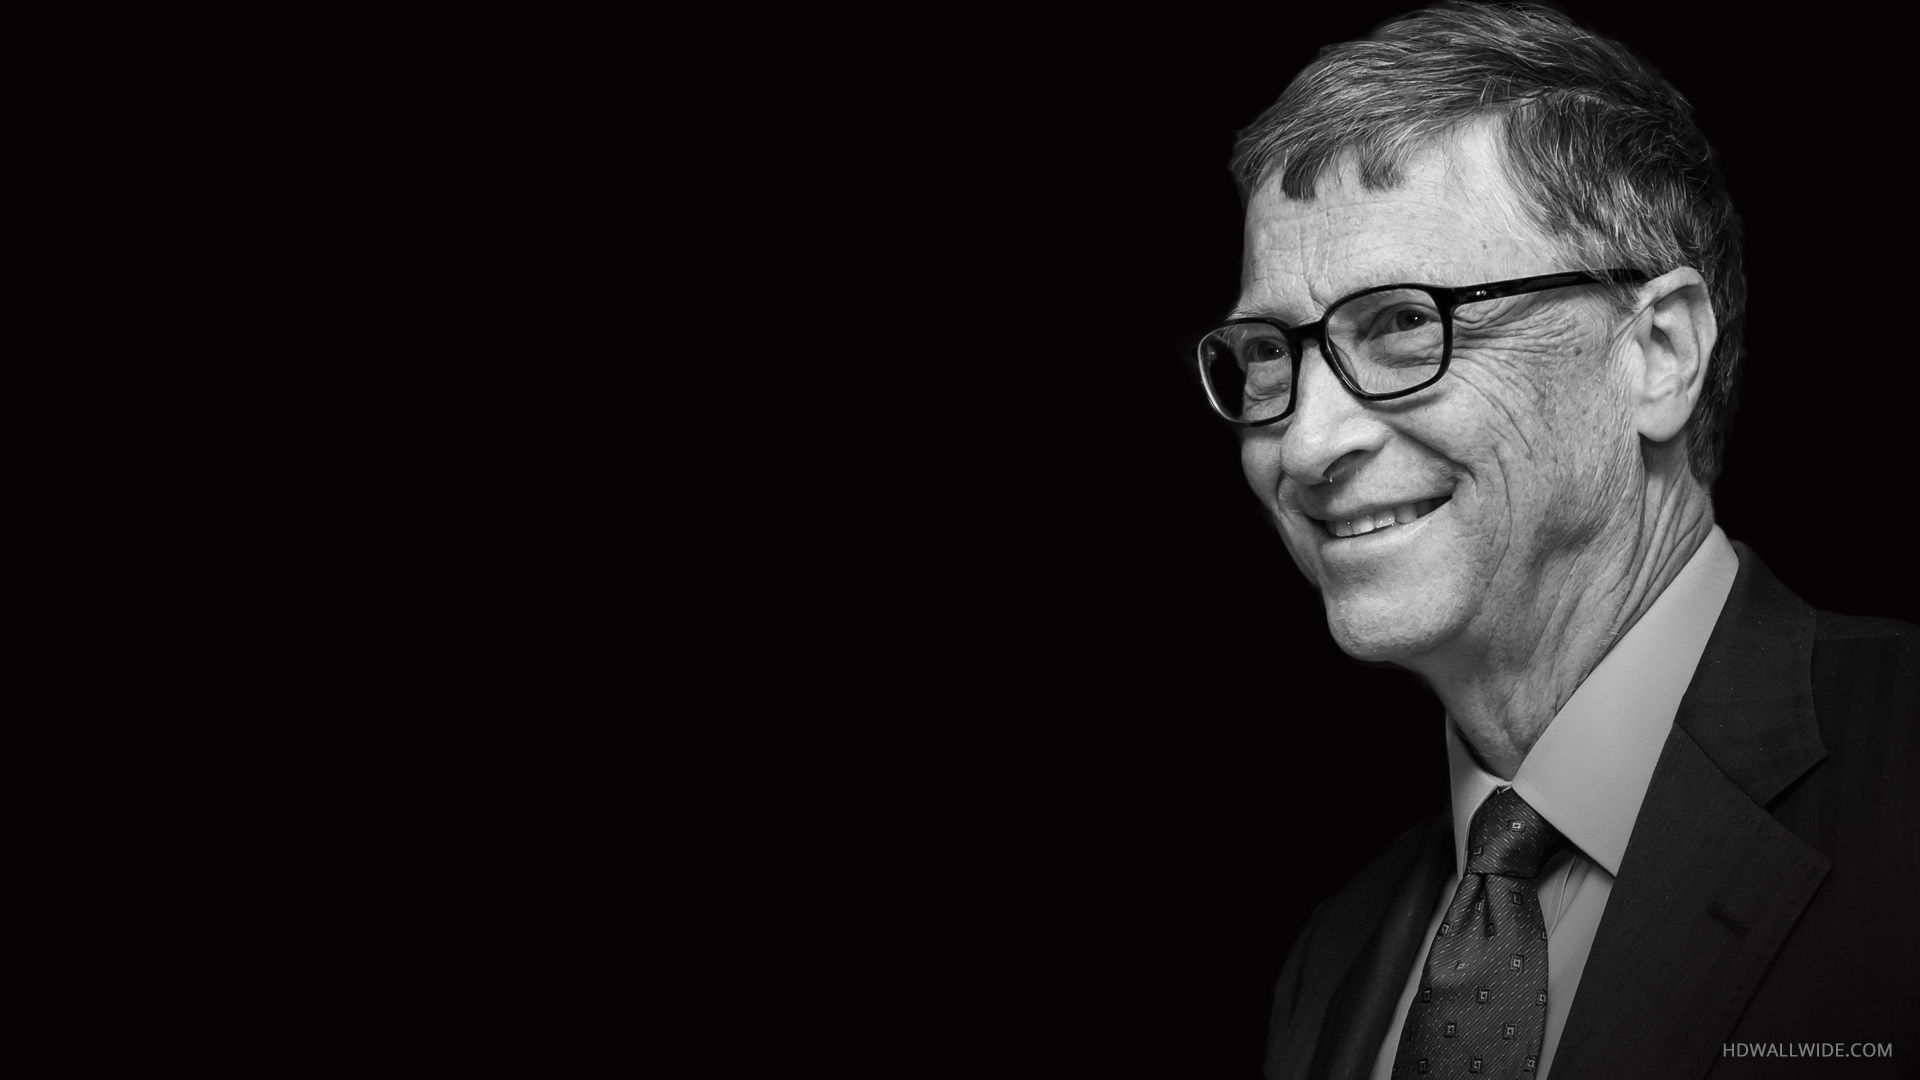 entrepreneurship bill gates Philanthropist, entrepreneur and one of the world's wealthiest billionaires bill gates has shared many powerful quotes of inspiration over the past decade bill and his wife melinda have donated billions to charities and pressing causes around the world, making this planet a much better place.